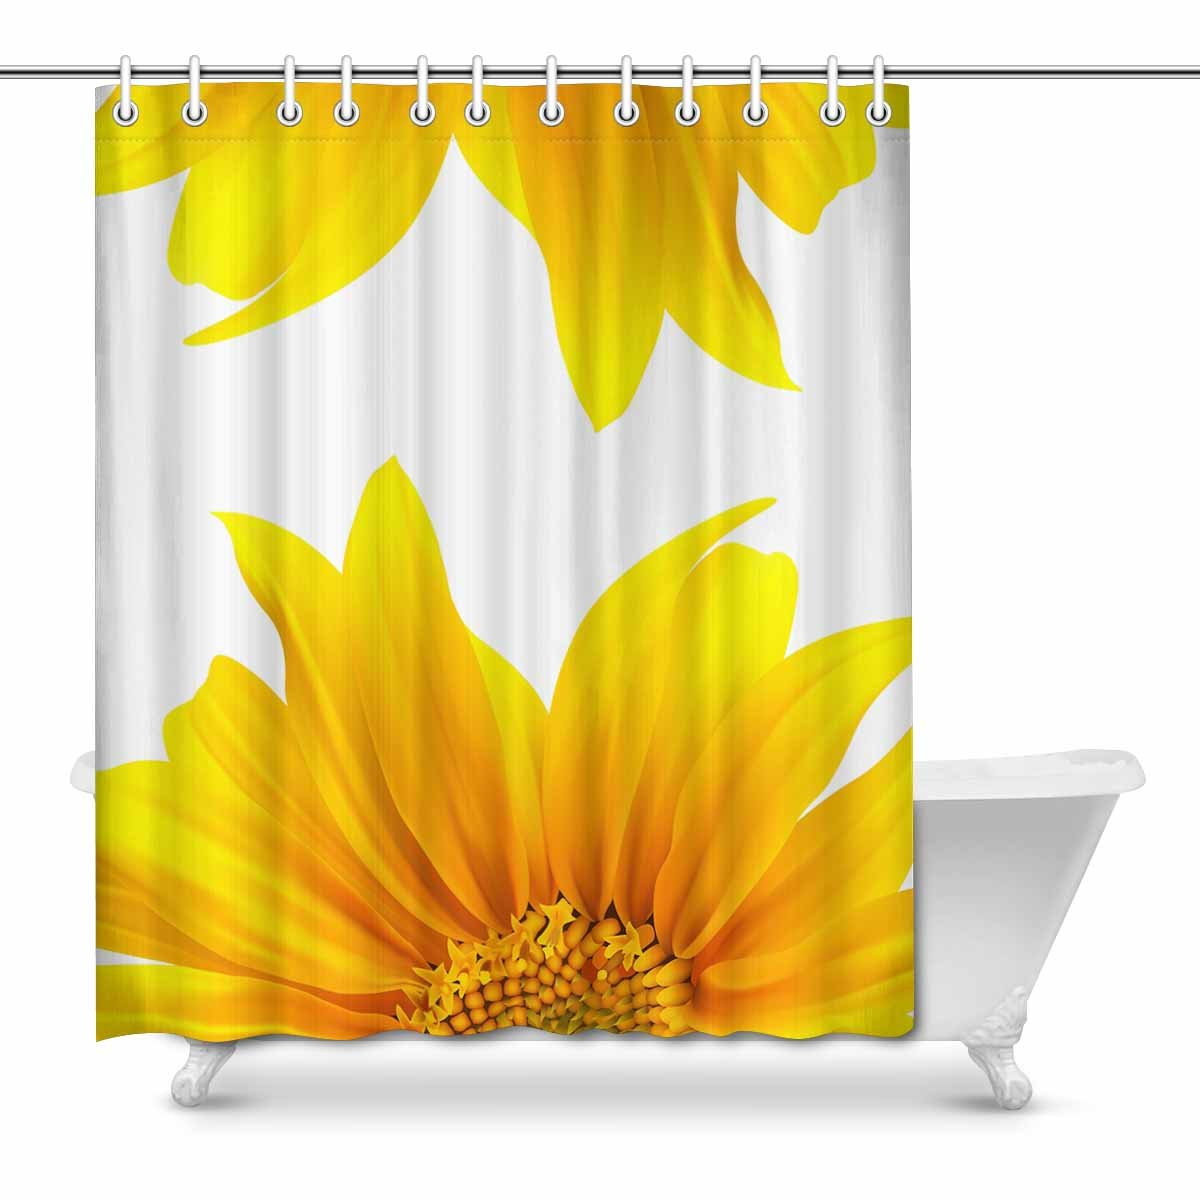 MKHERT Sunflower Modern Flourishing Yellow Summer Flower Waterproof Shower Curtain Decor Fabric Bathroom Set 66x72 inch